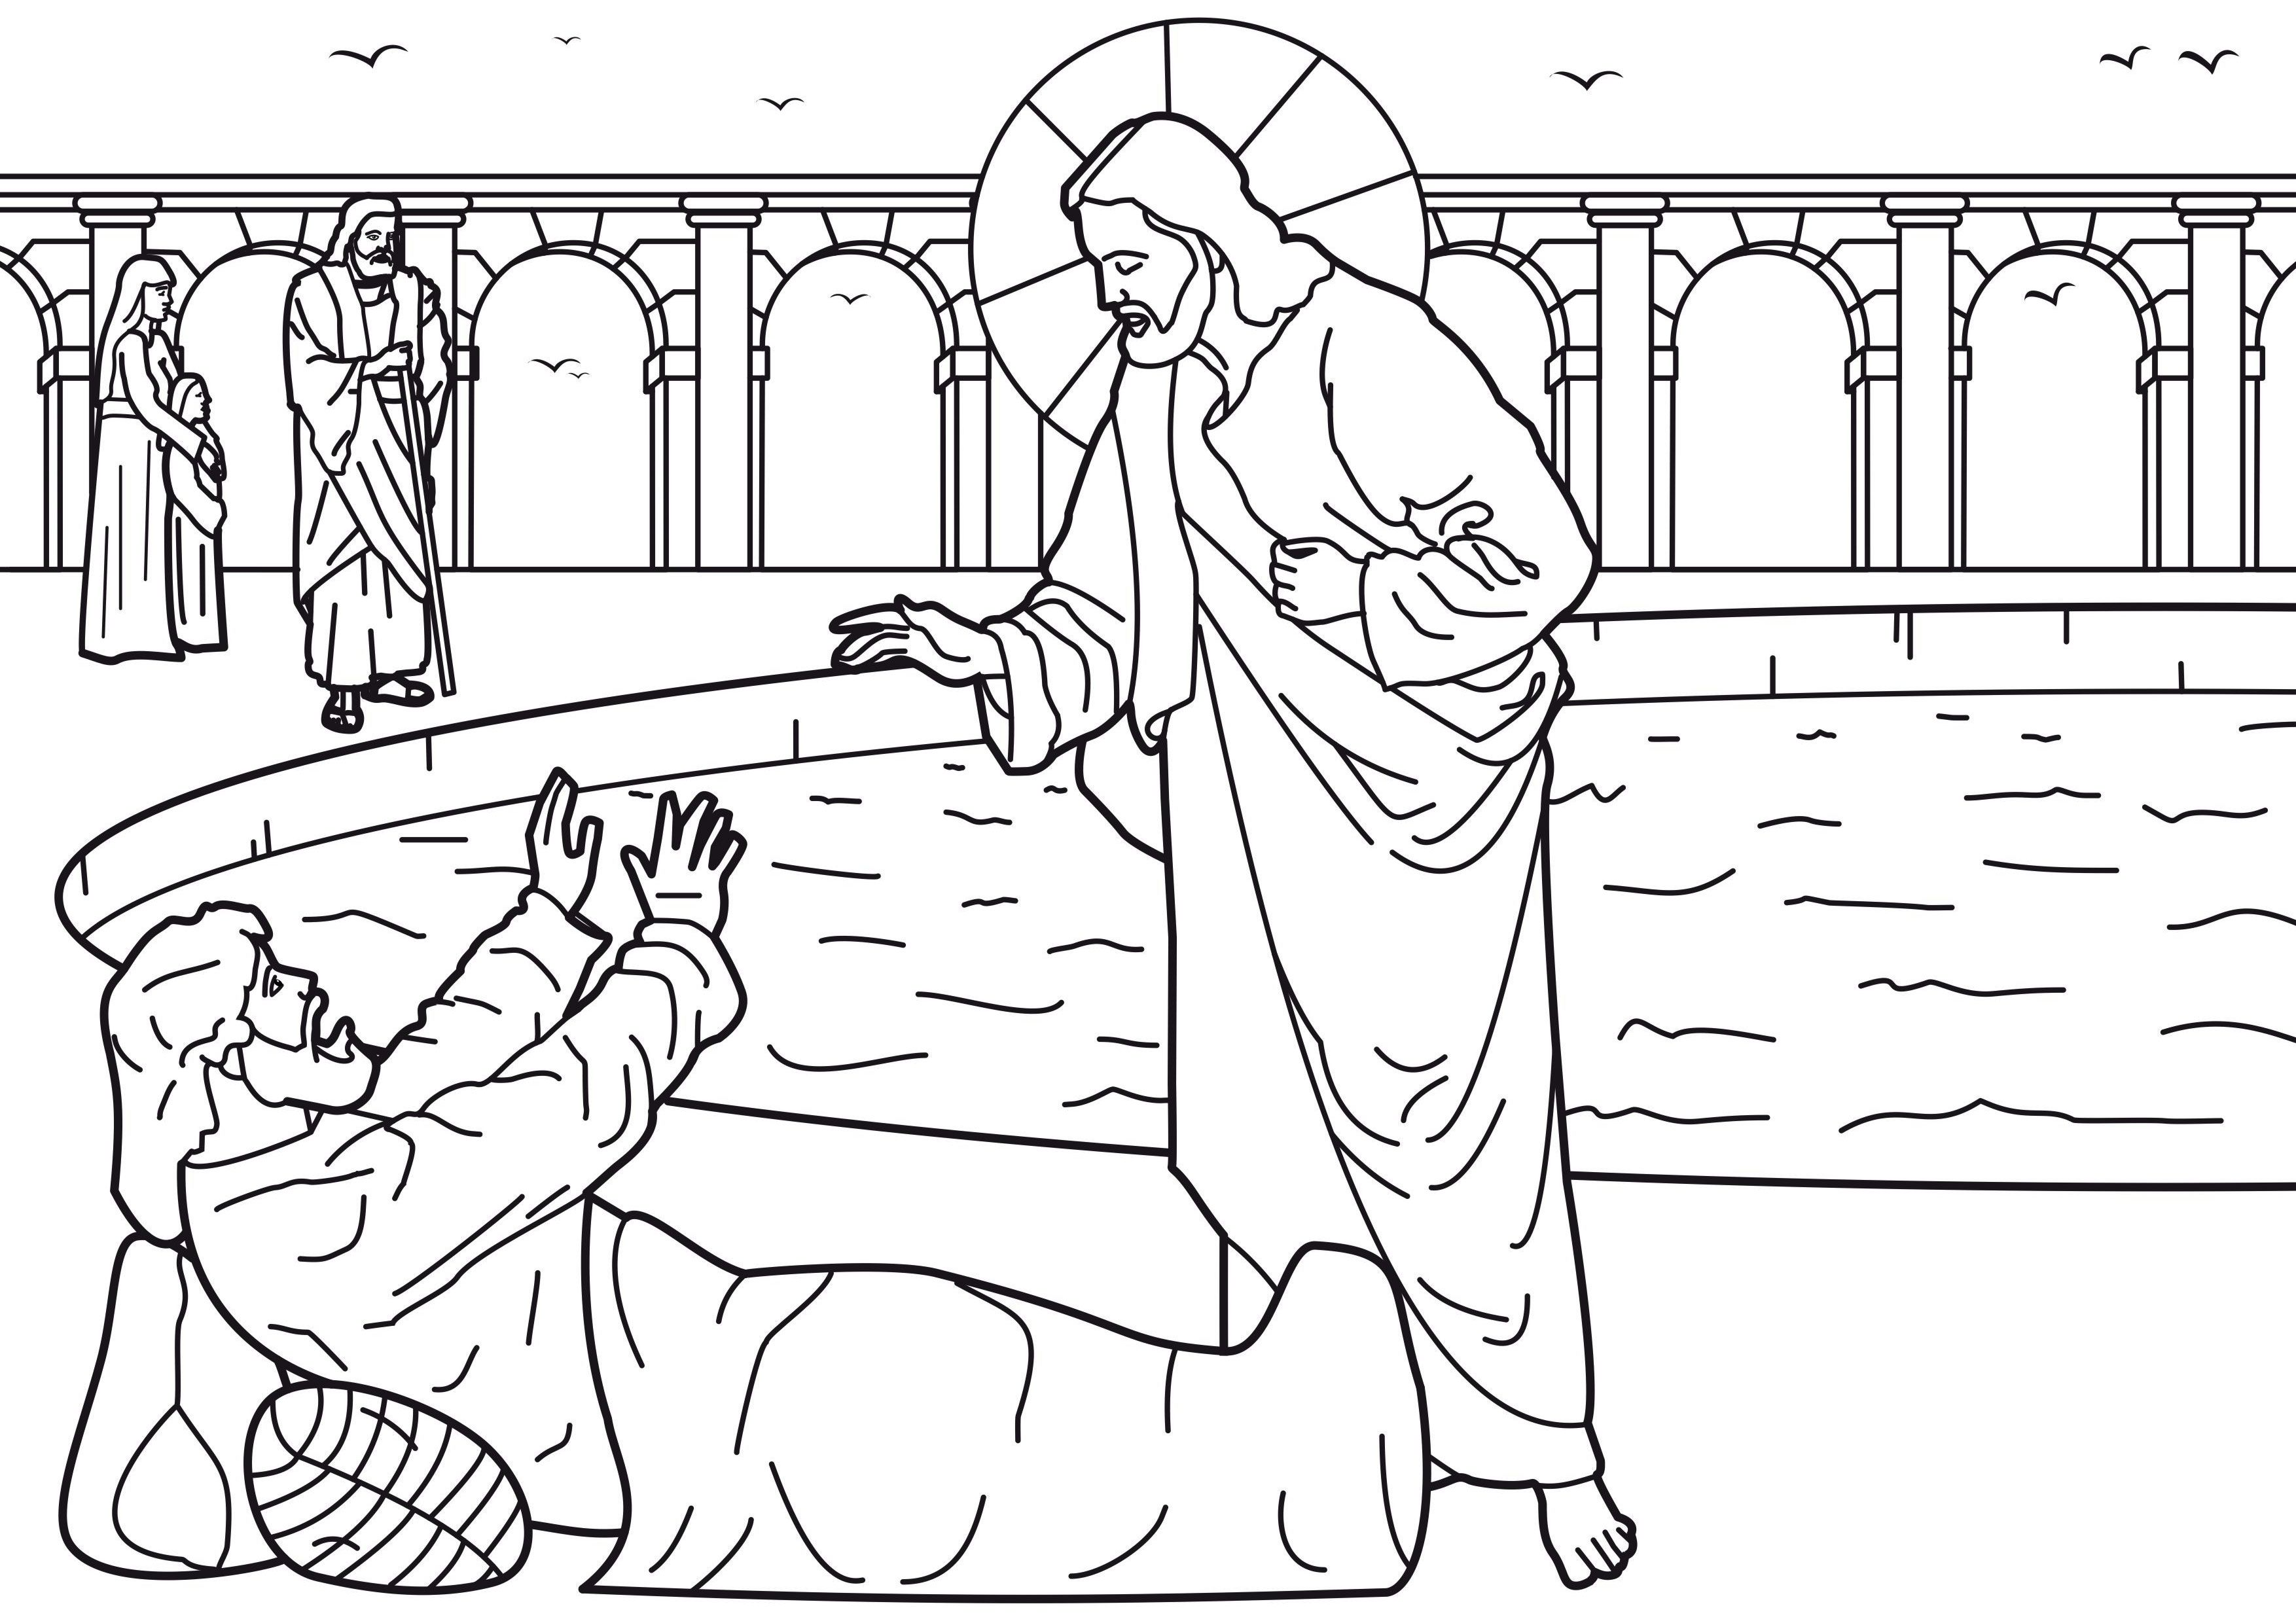 Free coloring pages jesus miracles - Image Detail For Coloring Picture Of Healing Of The Man At The Pool Of Bethesda